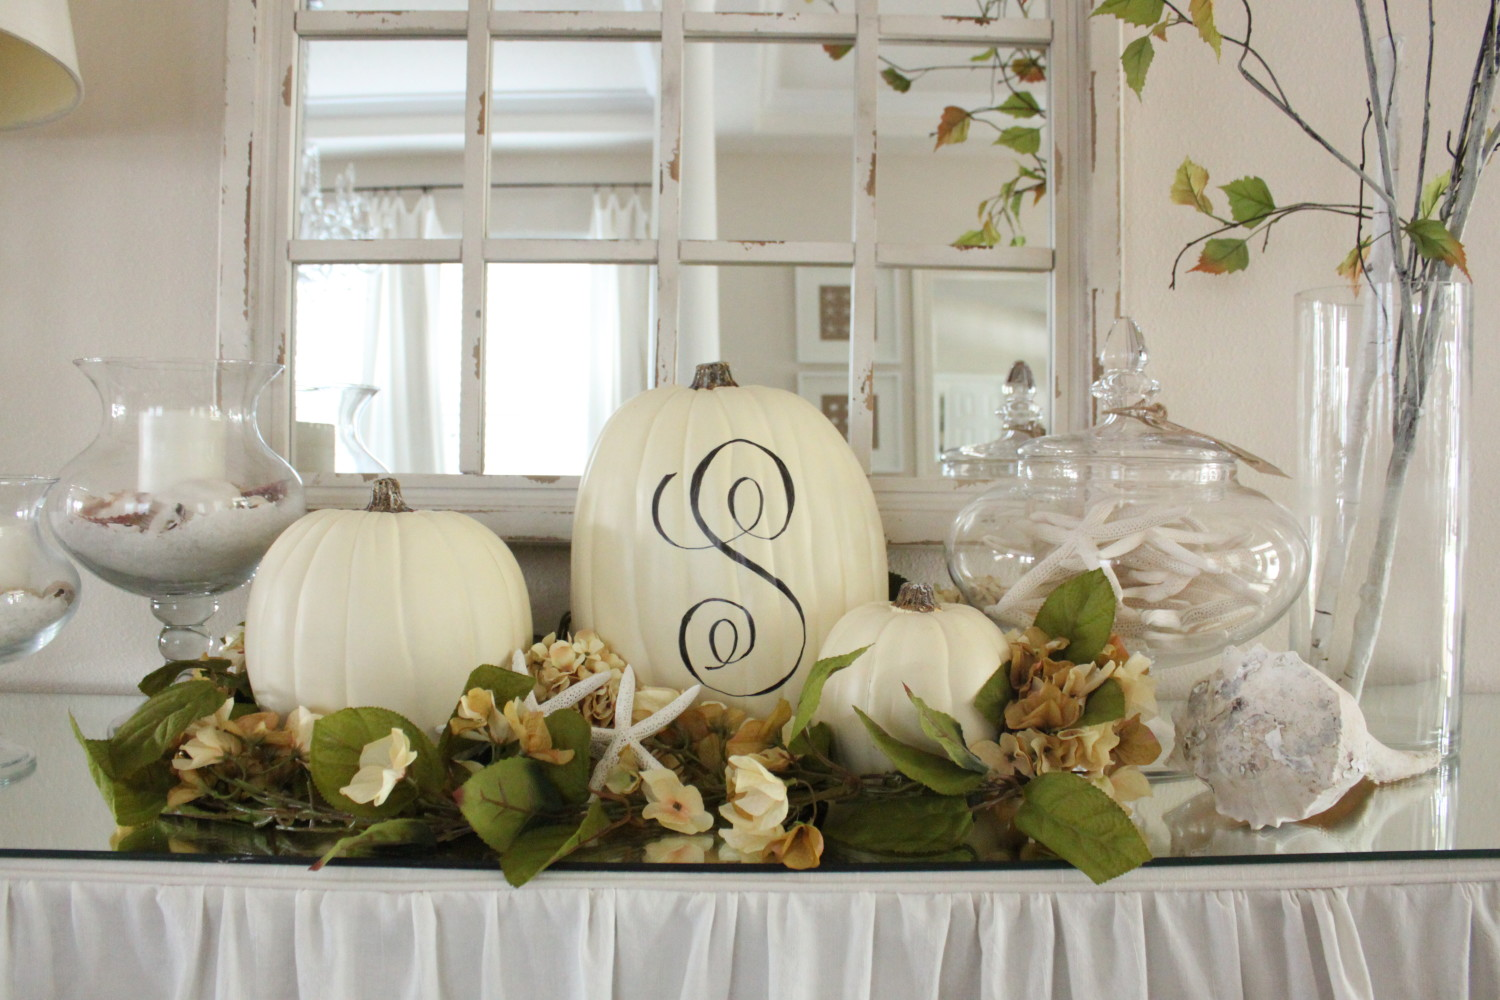 Coastal Fall Decor in Entry